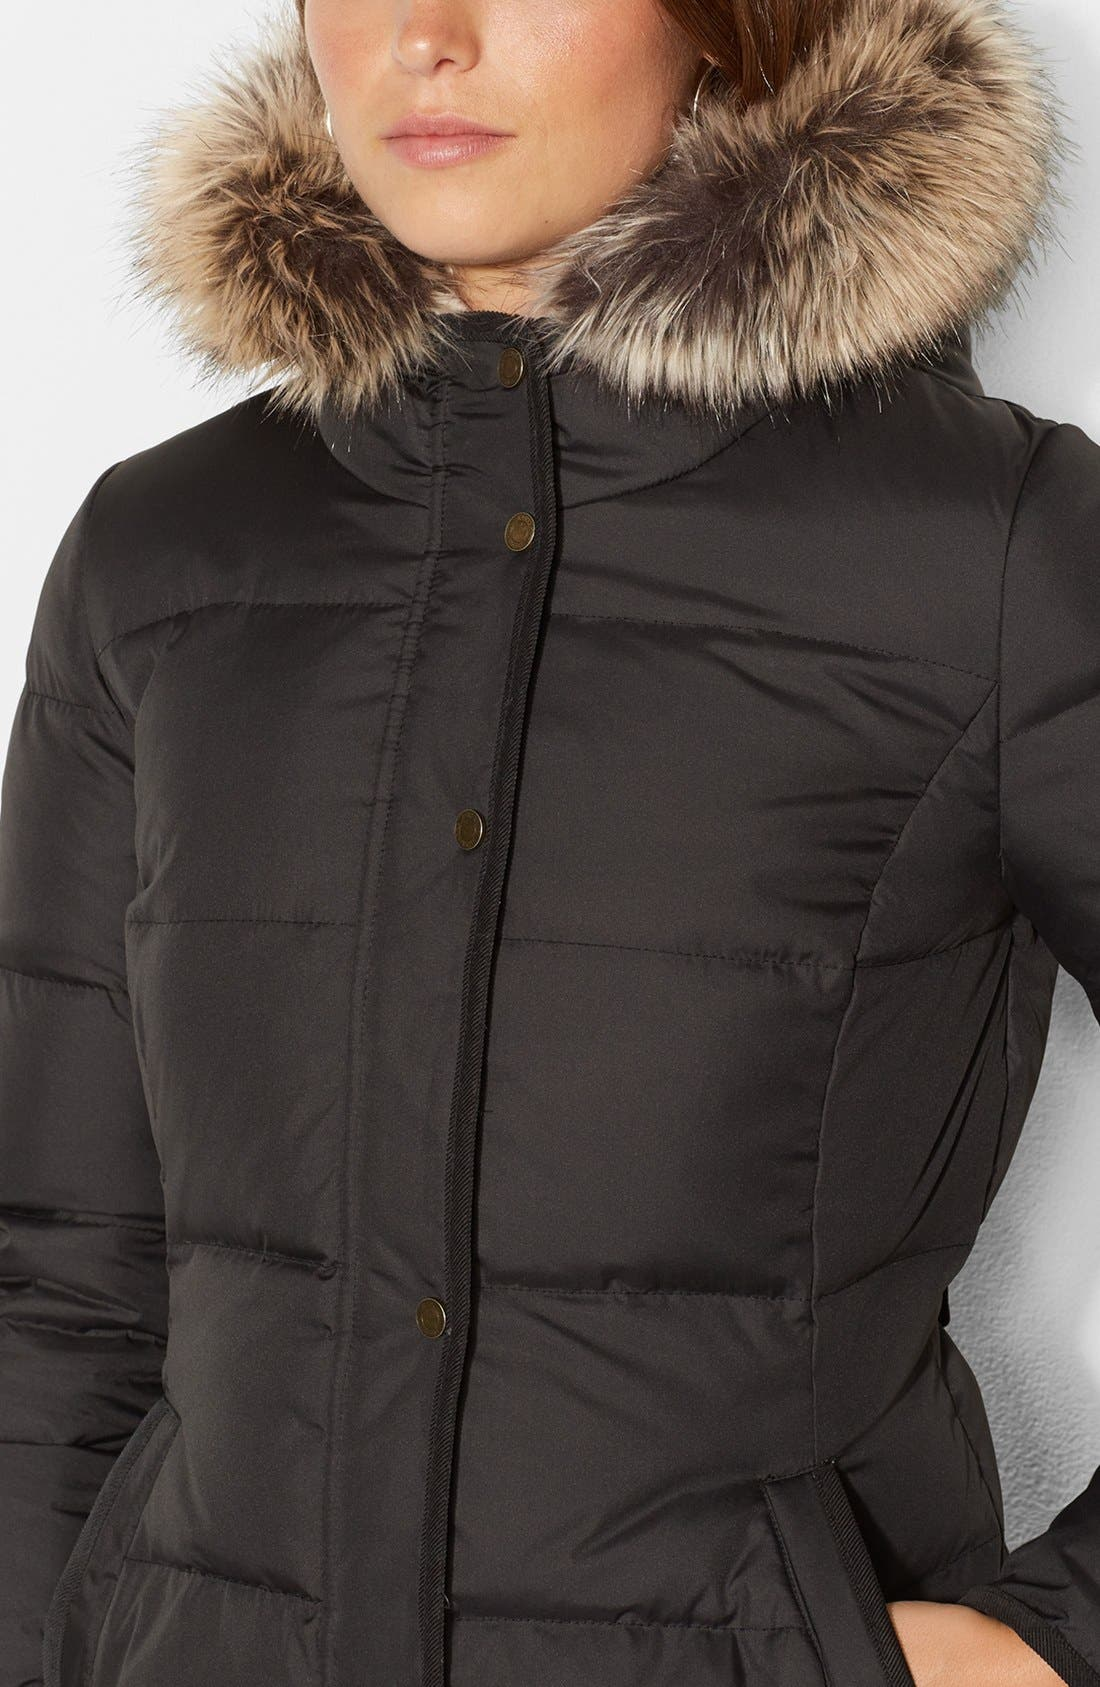 Alternate Image 3  - Lauren Ralph Lauren Faux Shearling Lined Down & Feather Jacket (Online Only)